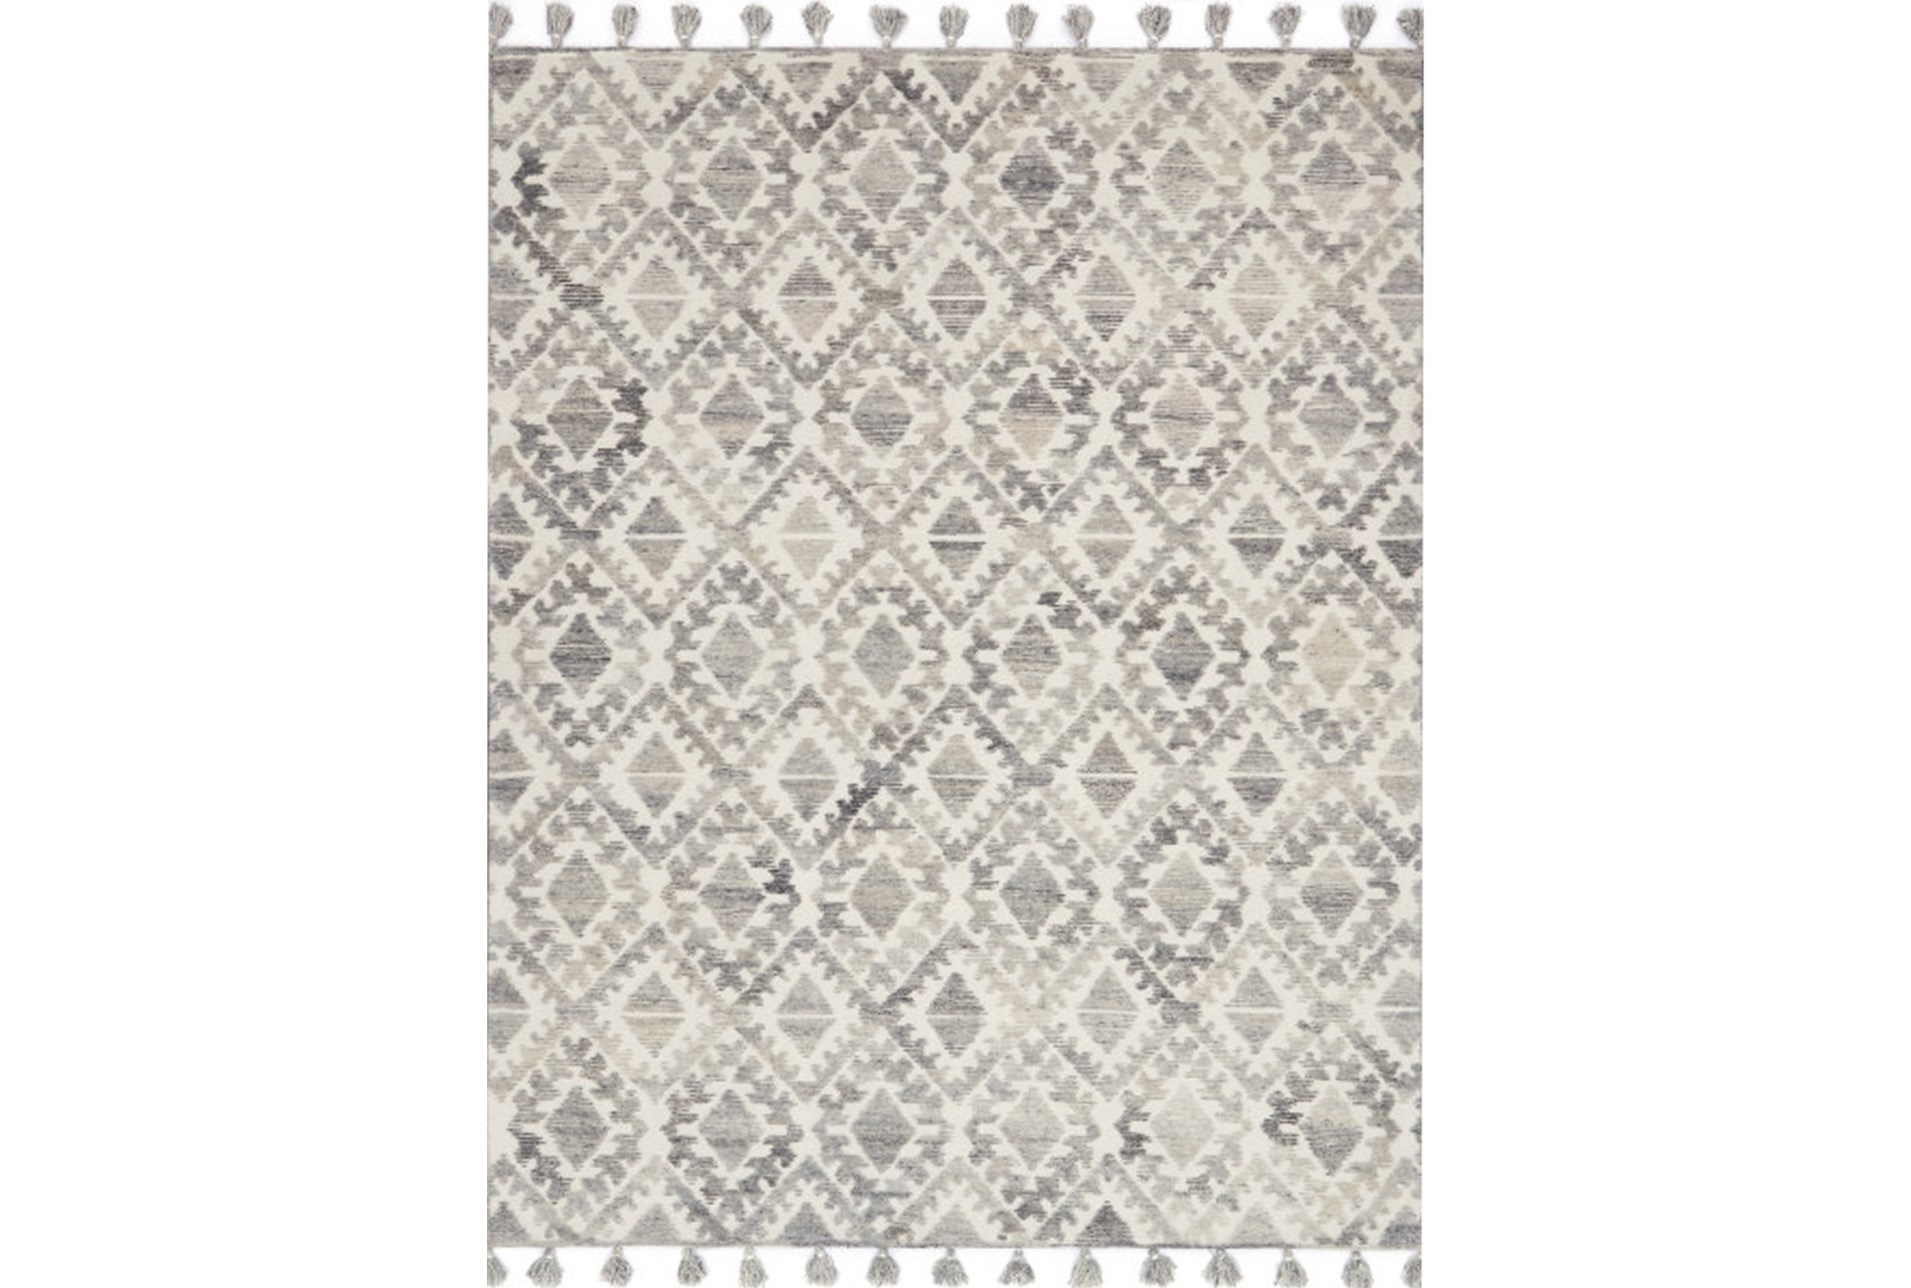 rugs rug area rugsmagnolia line new the picture full fox home weathered nhmagnolia joannas in size magnolia inspirations of